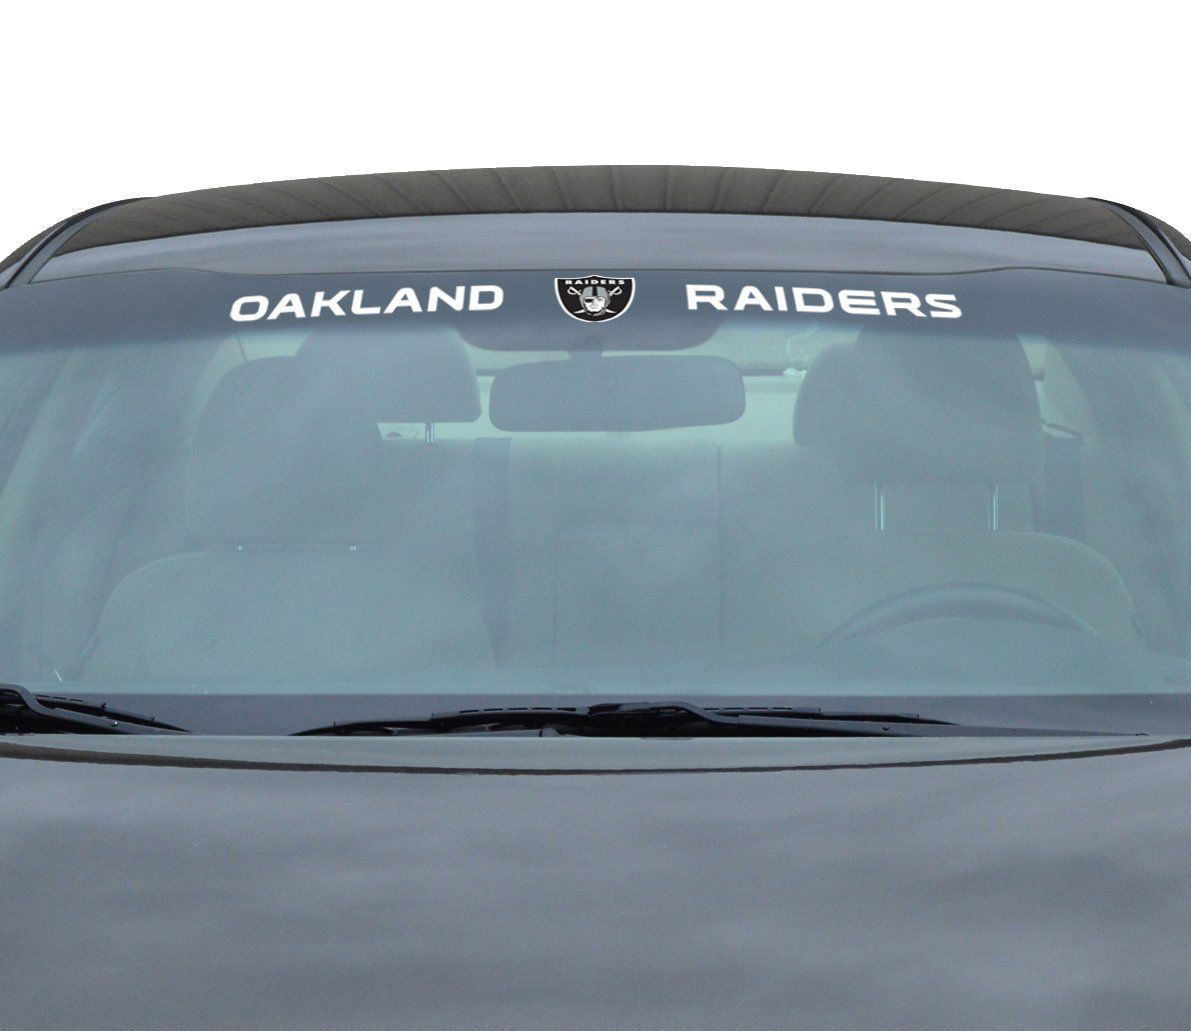 "OAKLAND RAIDERS 35"" X 4"" WINDSHIELD REAR WINDOW DECAL CAR TRUCK NFL FOOTBALL"